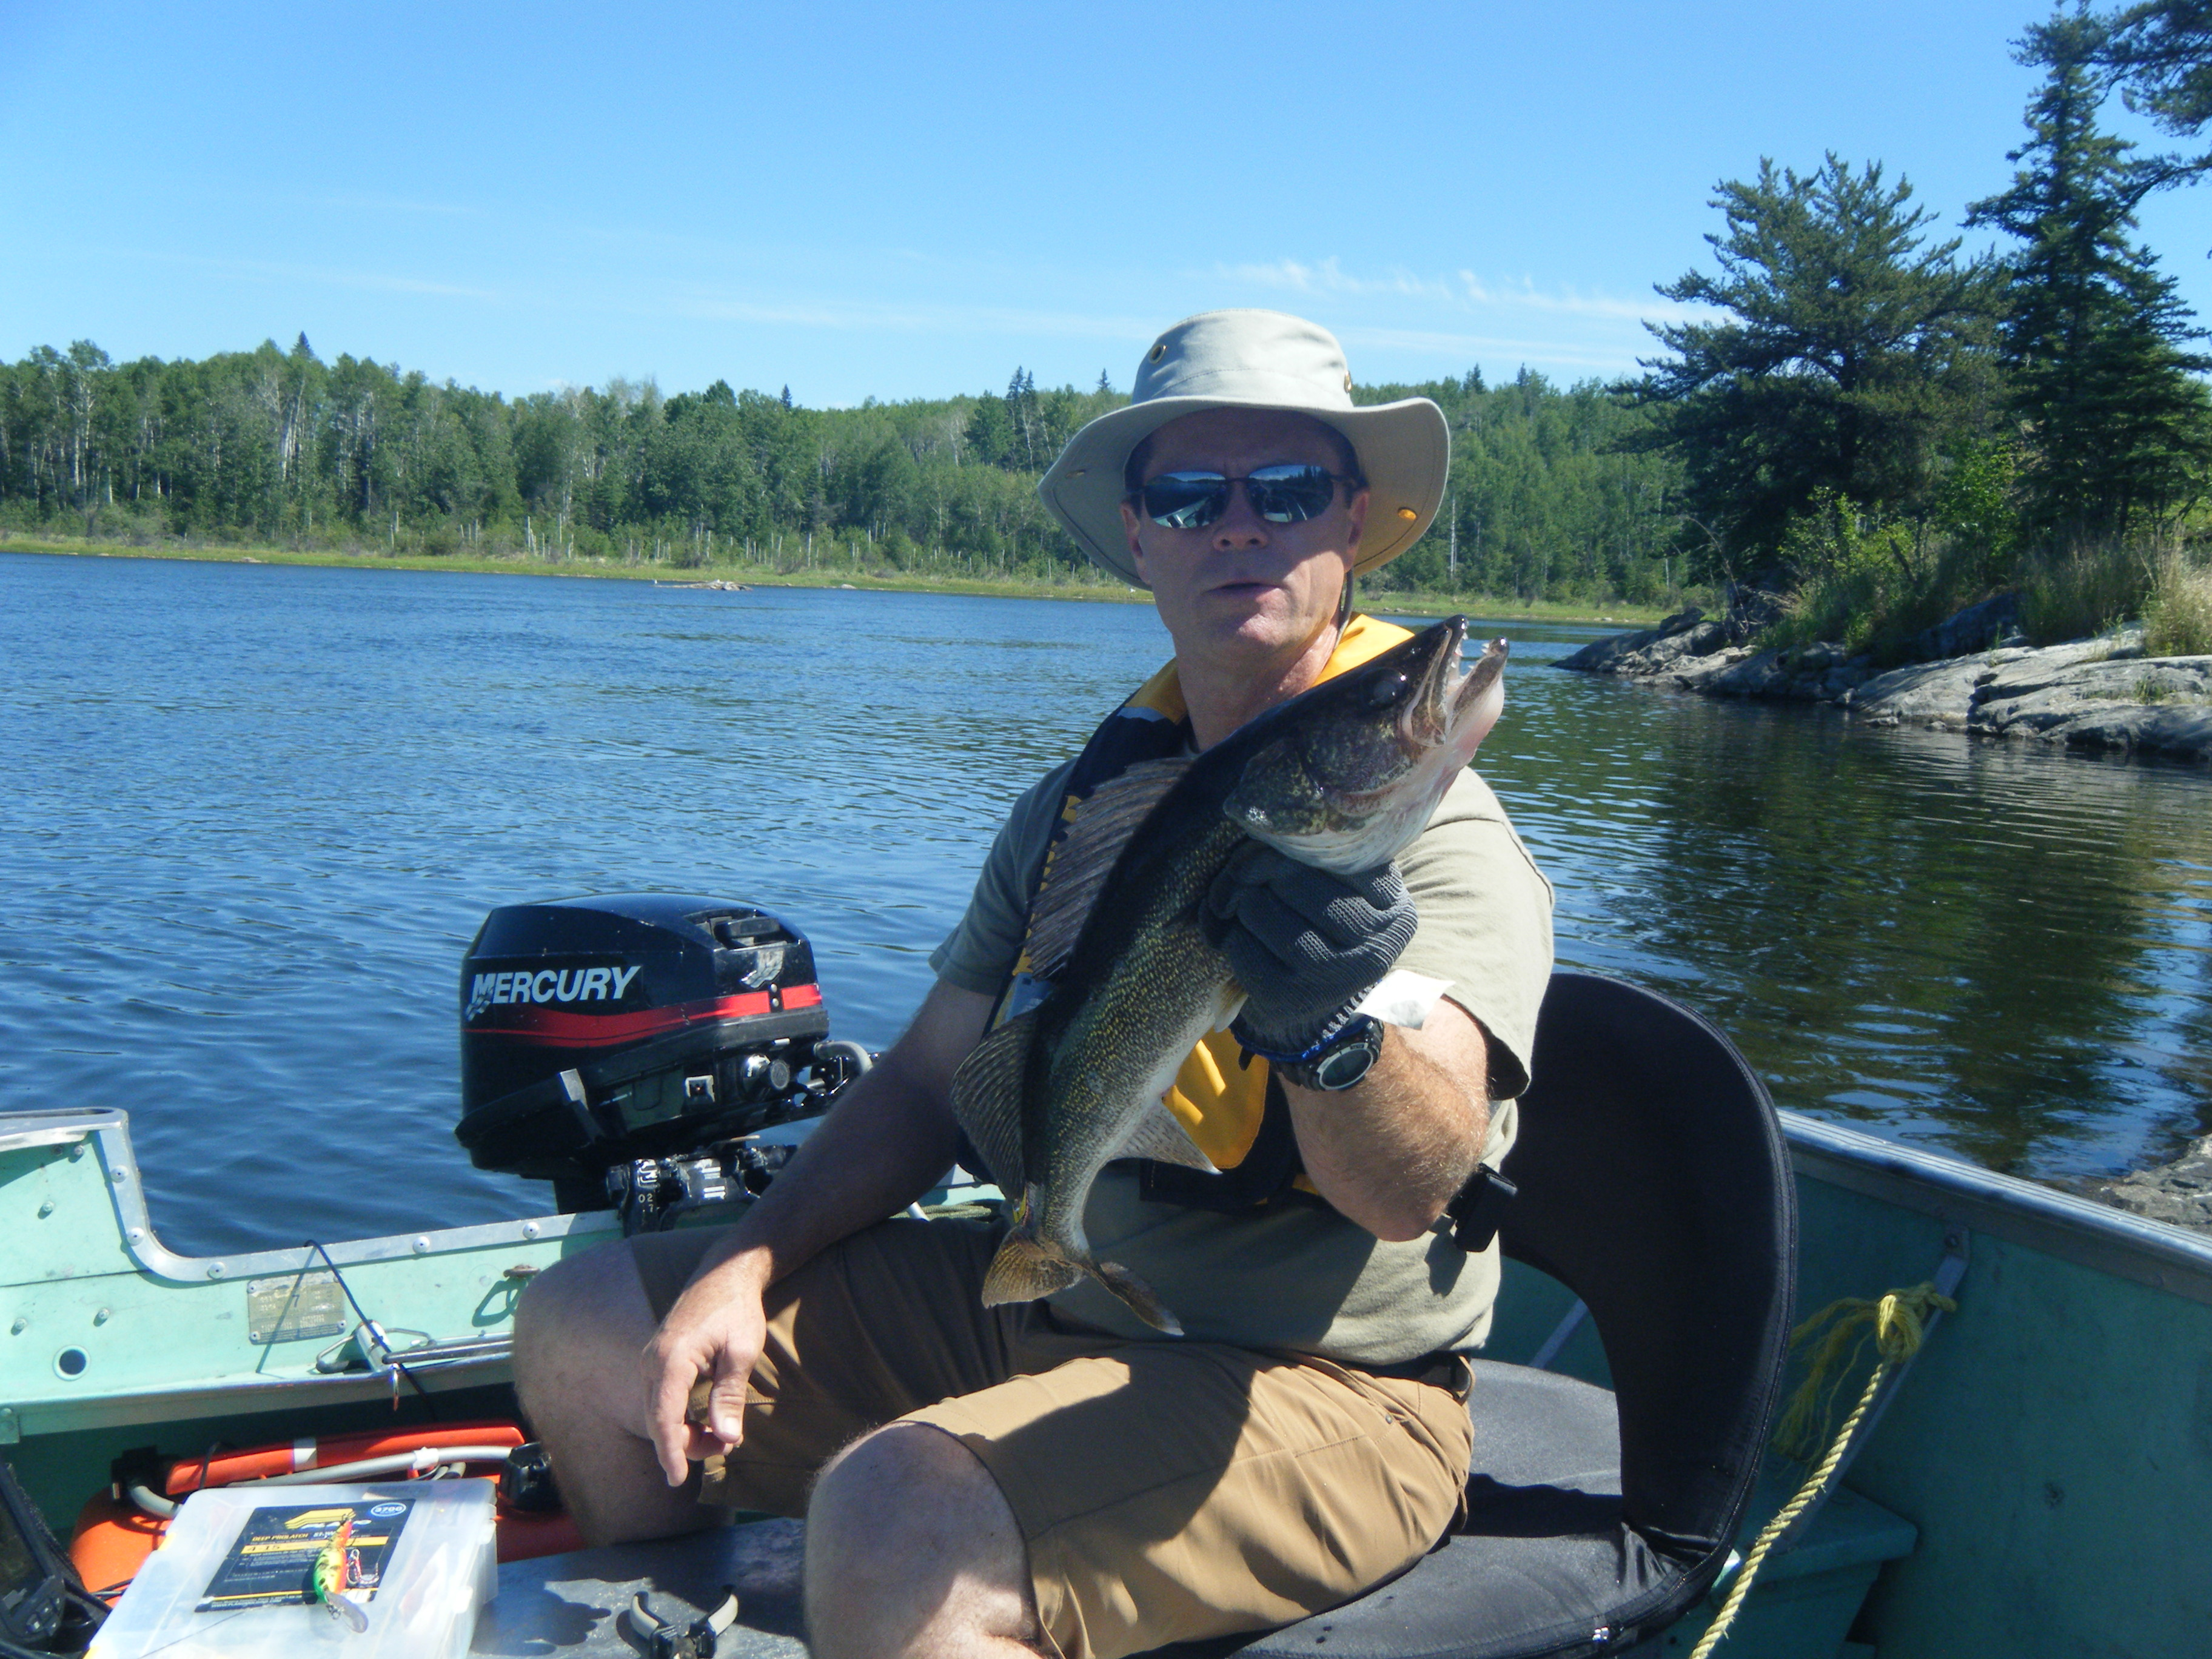 What catches walleye top 3 lures prairie outdoors len thompson sells thousands of the 5 of diamonds spoon is that it has continued to catch fish for a hundred years consistently both pike and walleye nvjuhfo Images